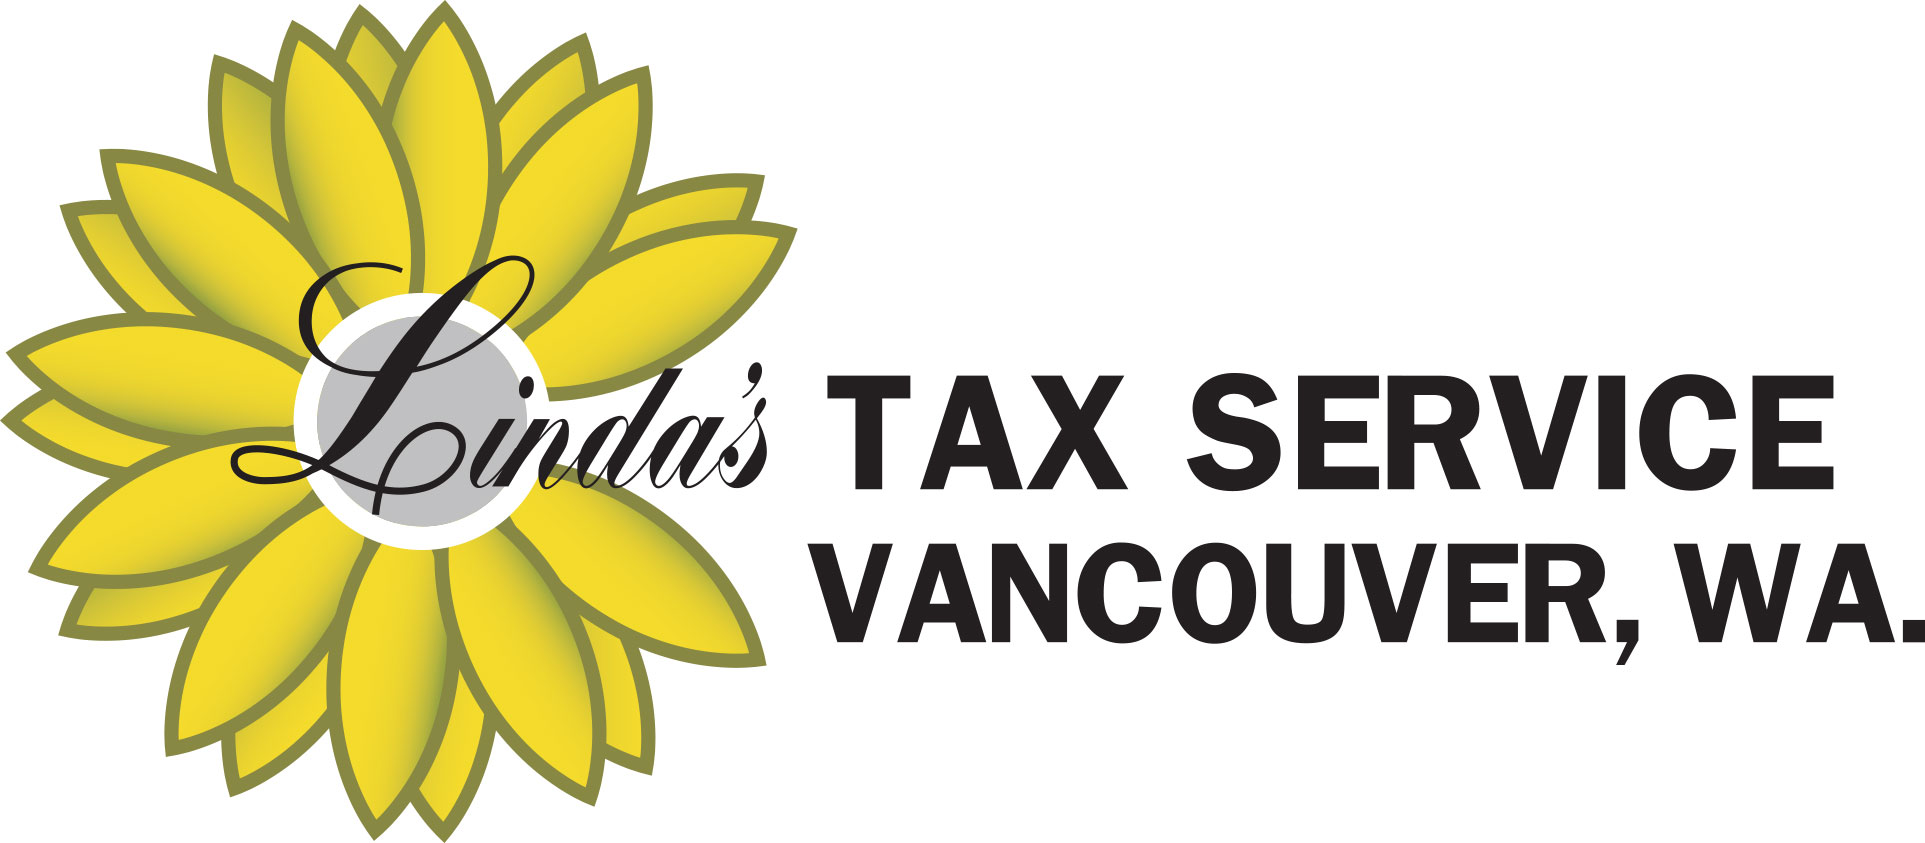 Tax Service in Vancouver WA from Linda's Tax Service